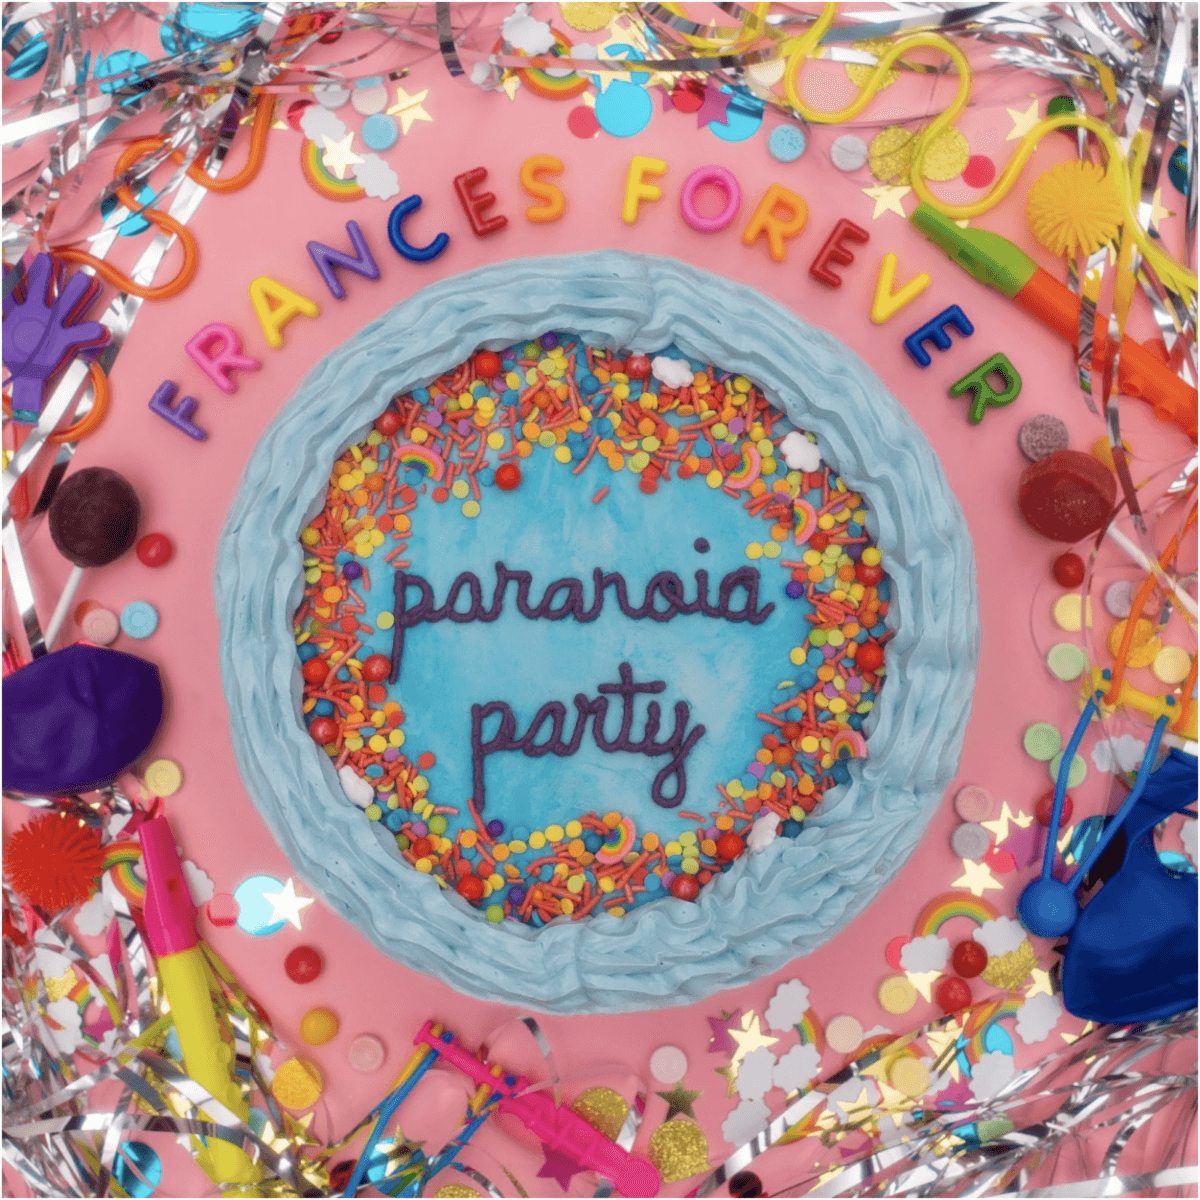 Frances Forever, has dropped paranoia party. The EP, is the debut release for the project of Frances Garrett, and now available via Mom+Pop